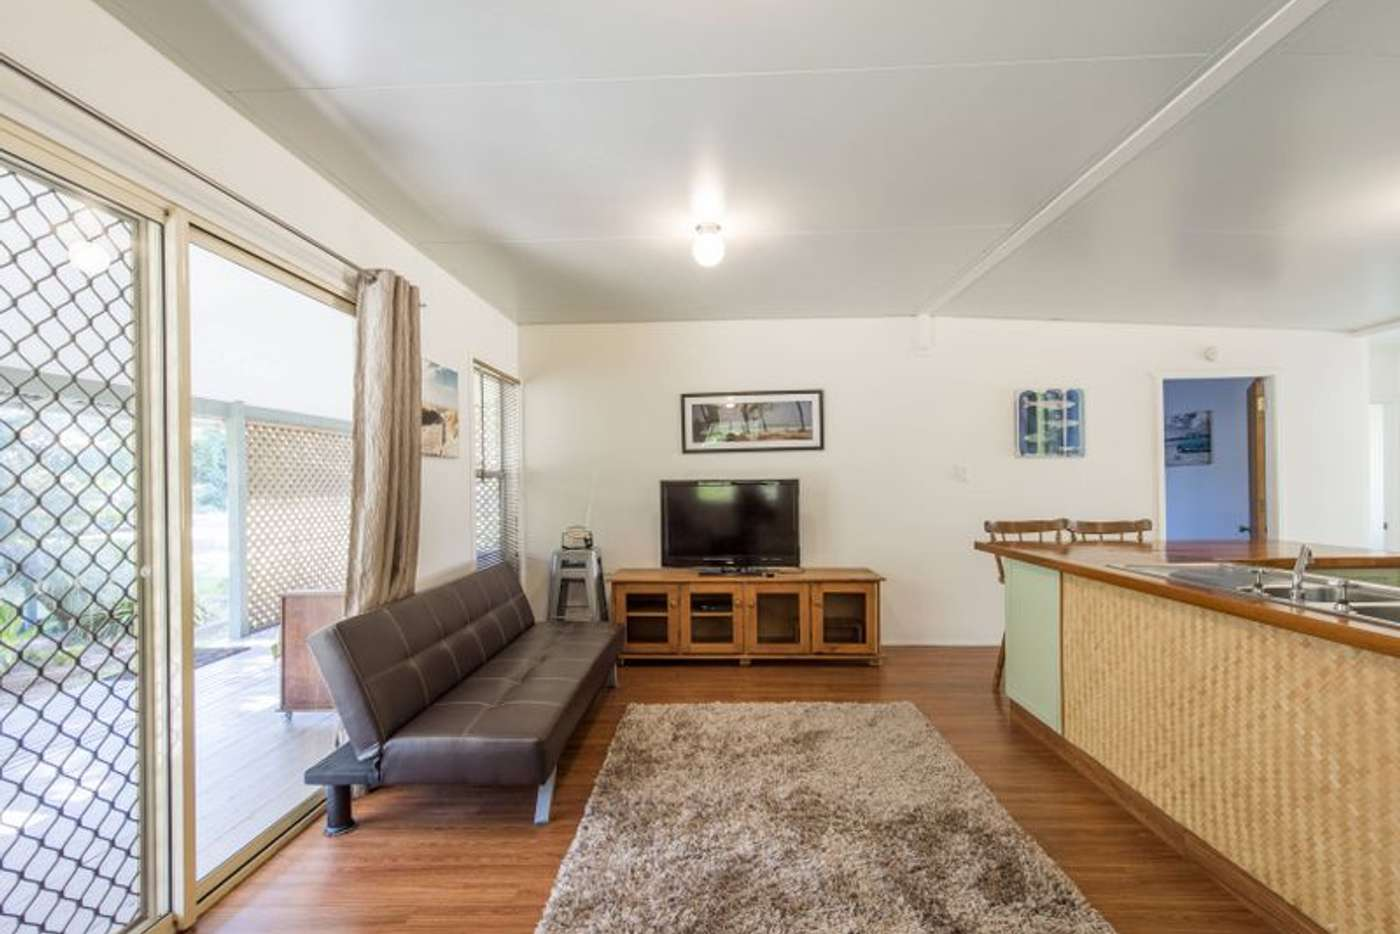 Sixth view of Homely house listing, 42 Long Street, Iluka NSW 2466